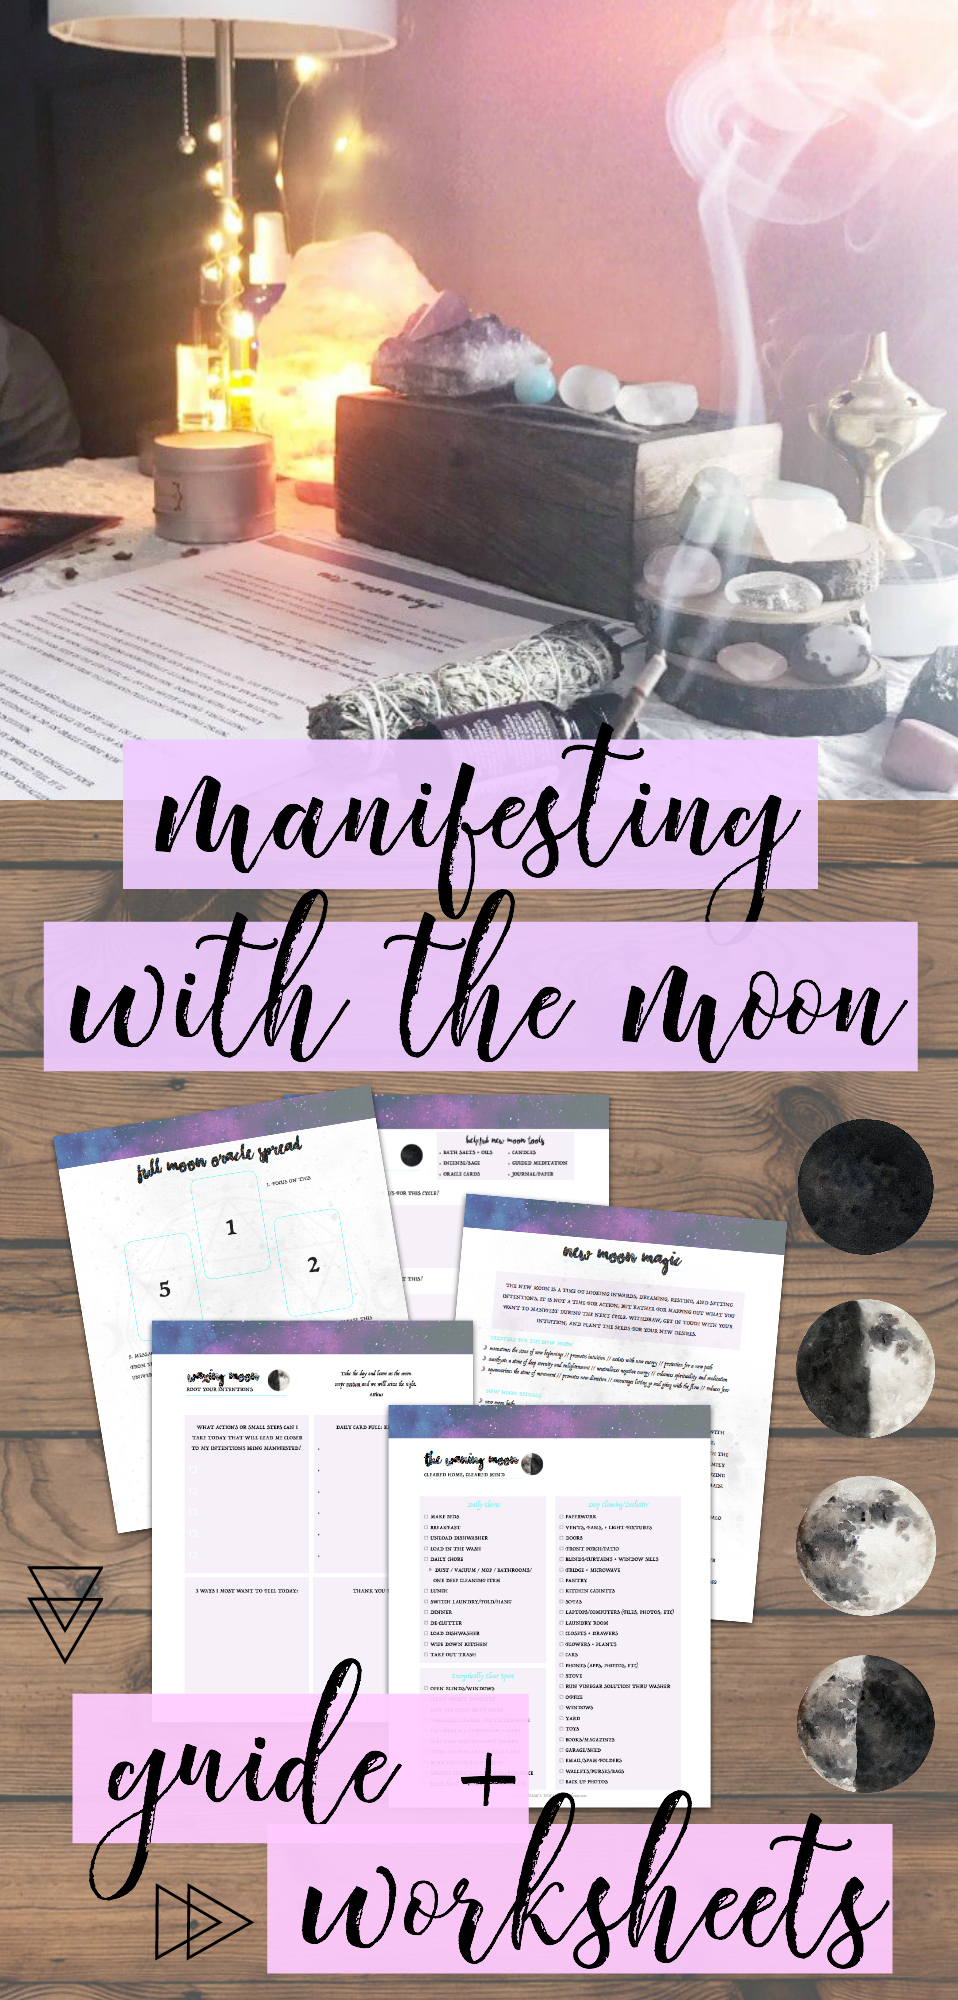 Manifesting Magic with the Moon